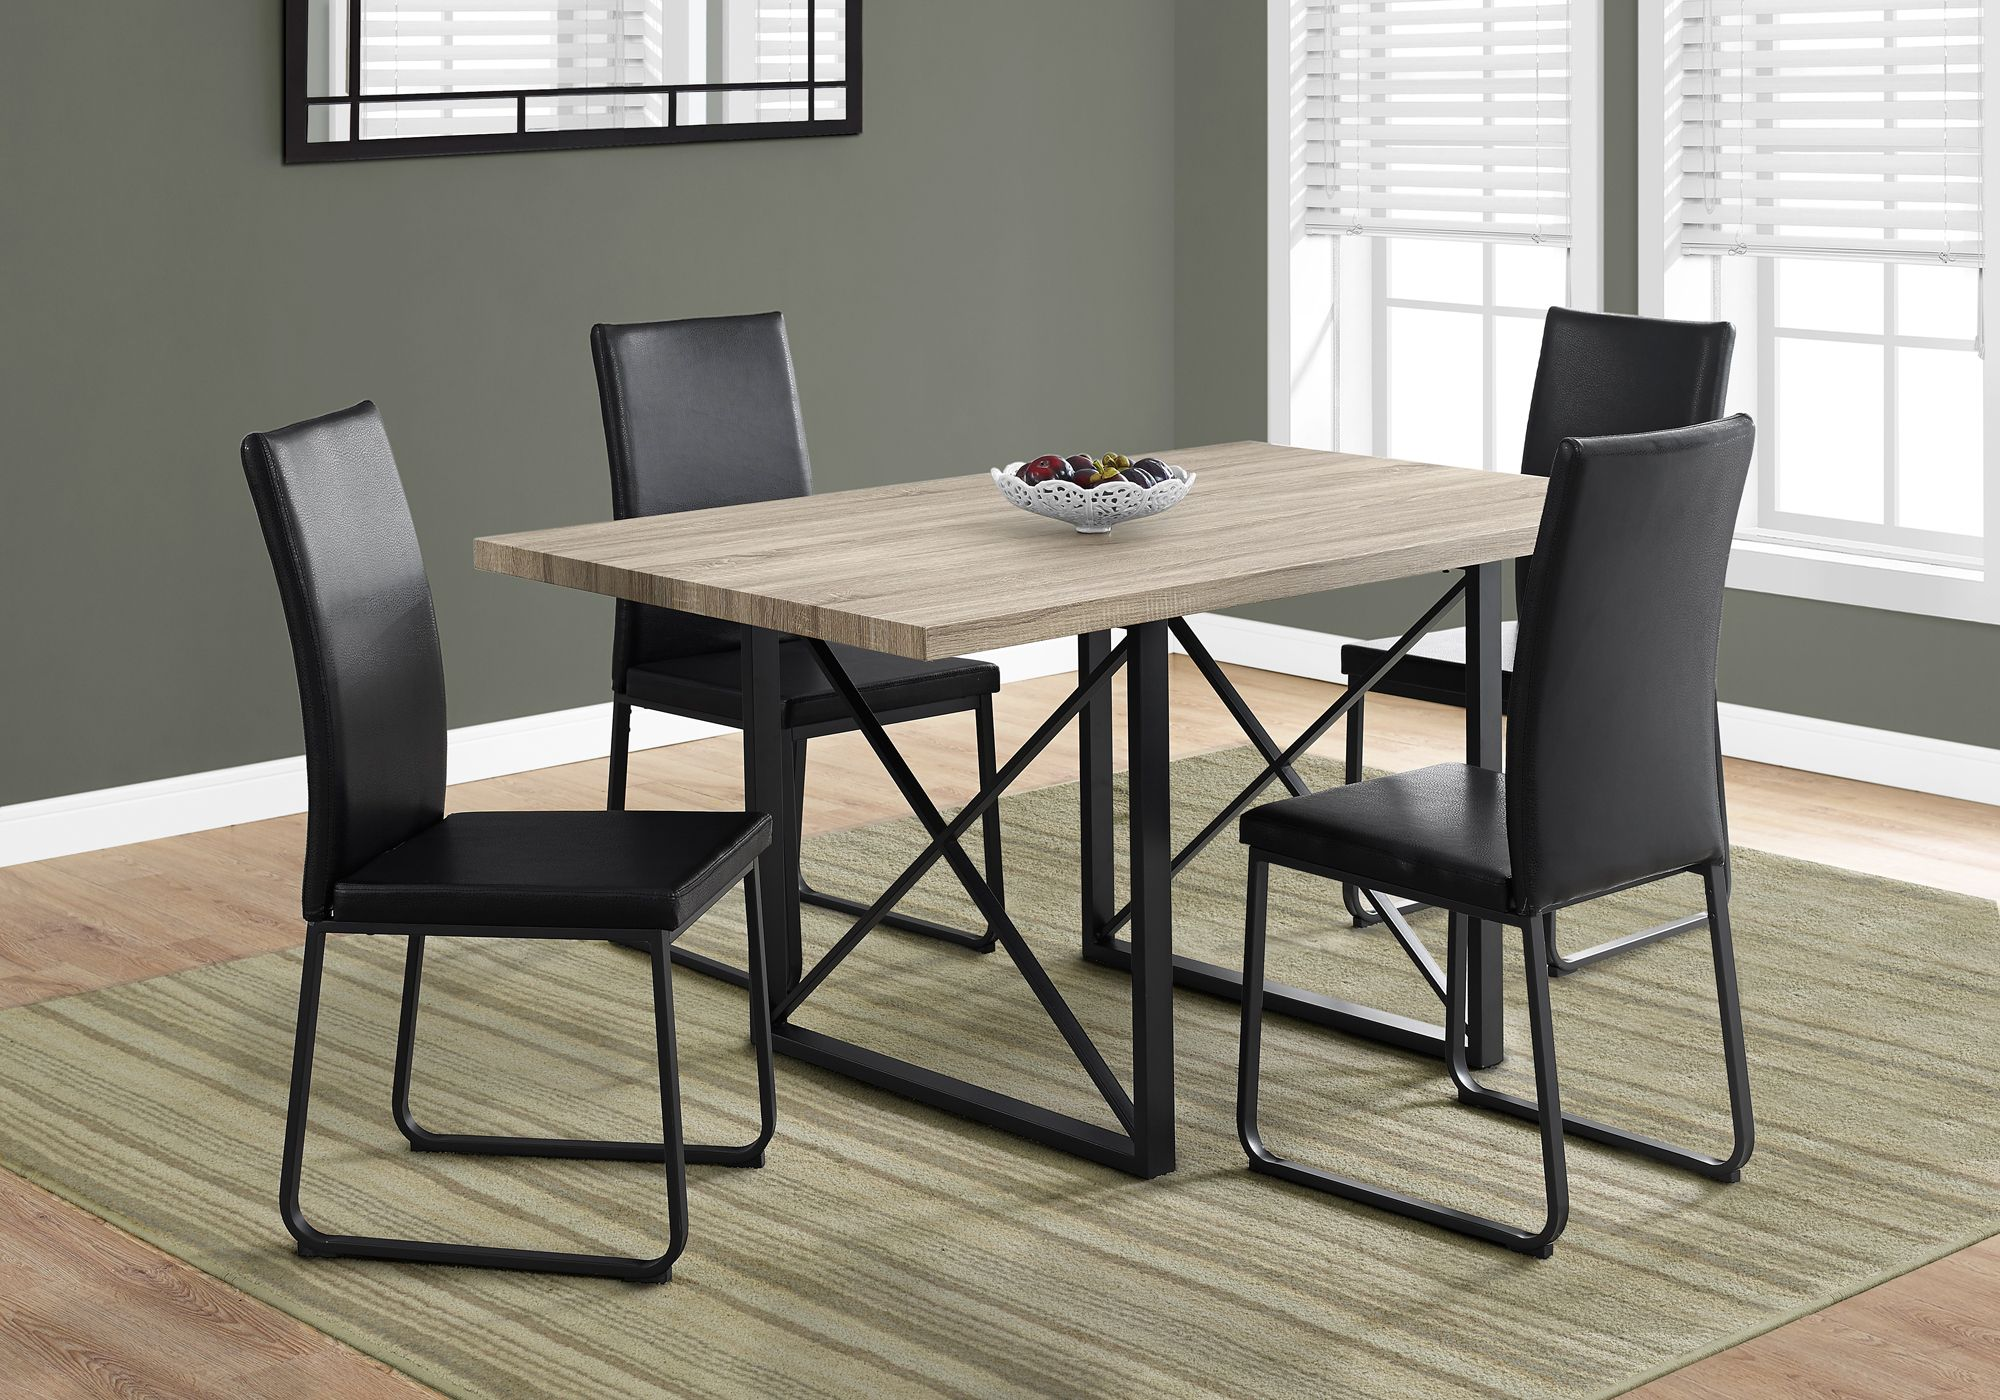 I 1100 dining table only 36 x 60 dark taupe black metal - Table cuisine moderne ...